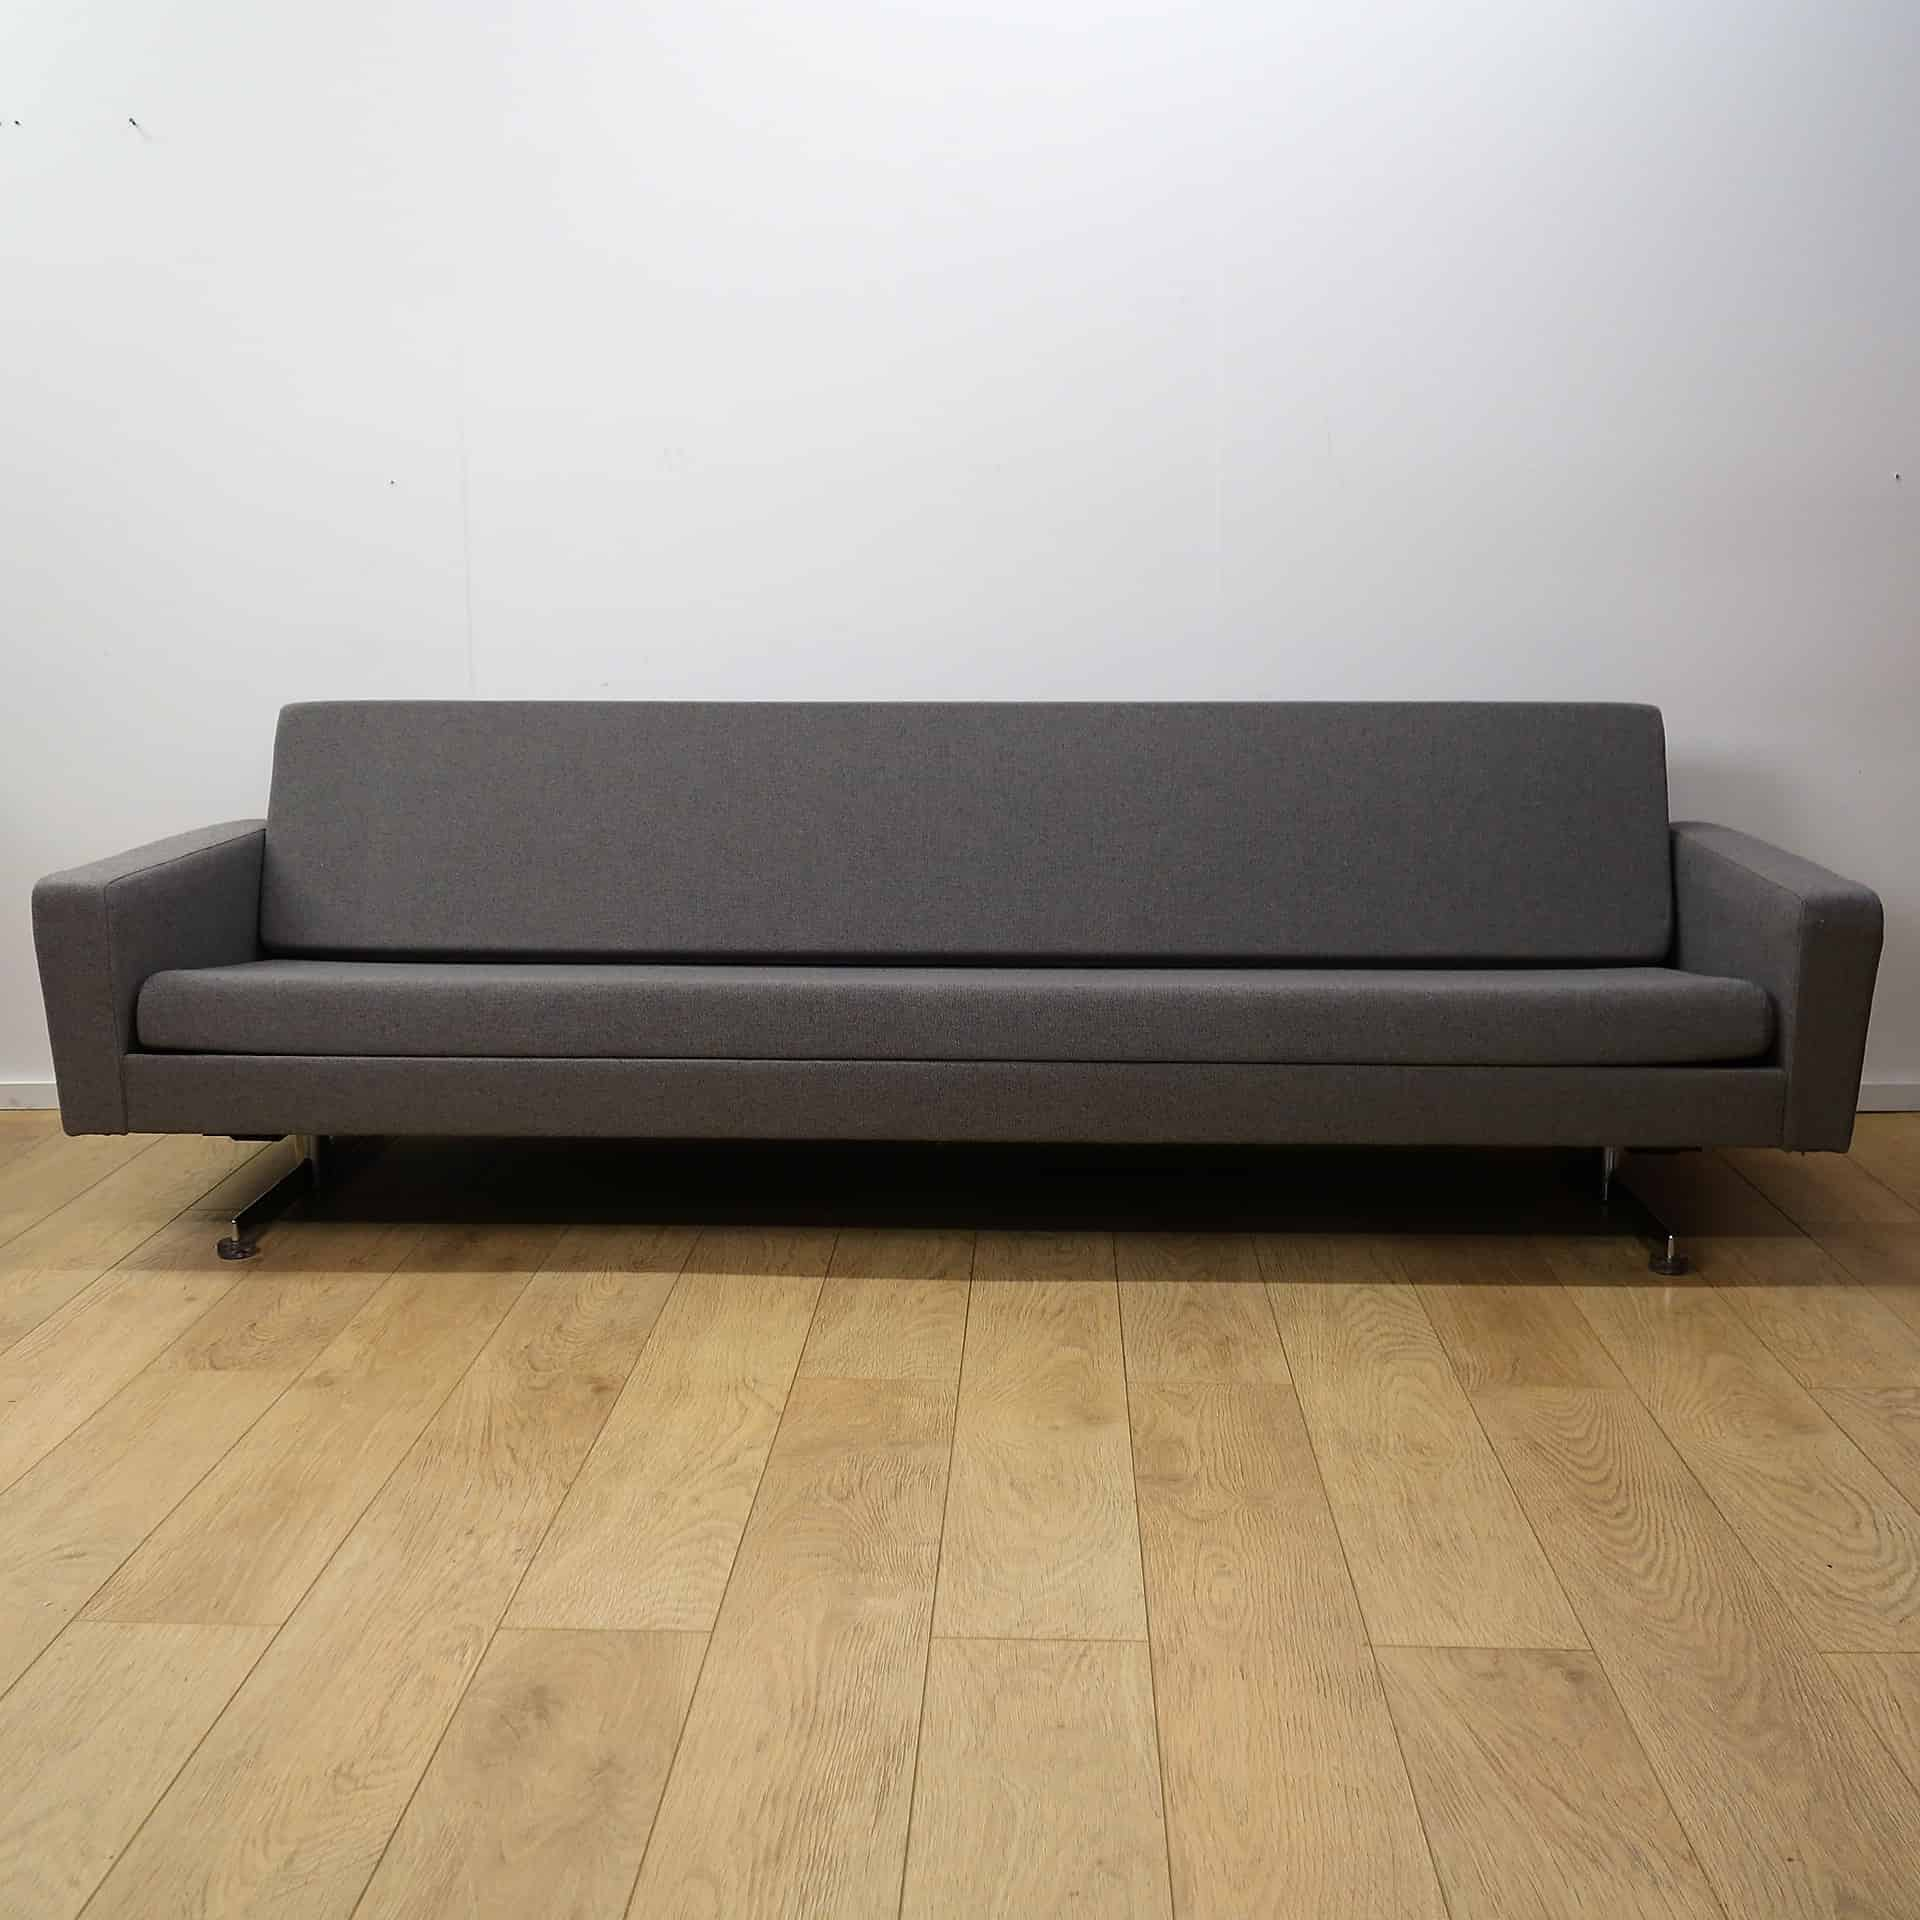 late 1960s sofa bed made in germany mark parrish mid century